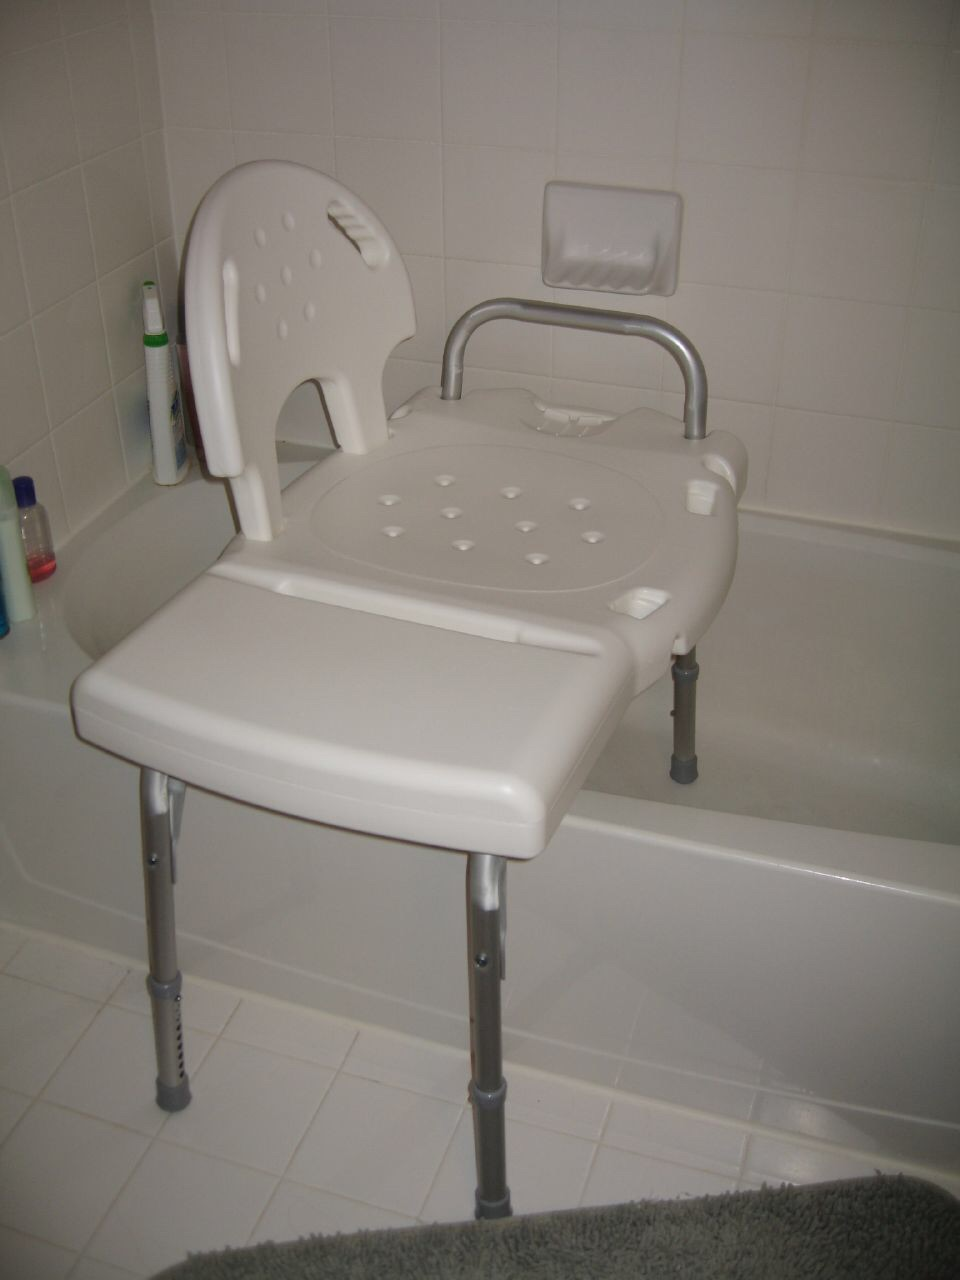 Shower Benches for Disabled | Tub Transfer Board | Transfer Tub Bench